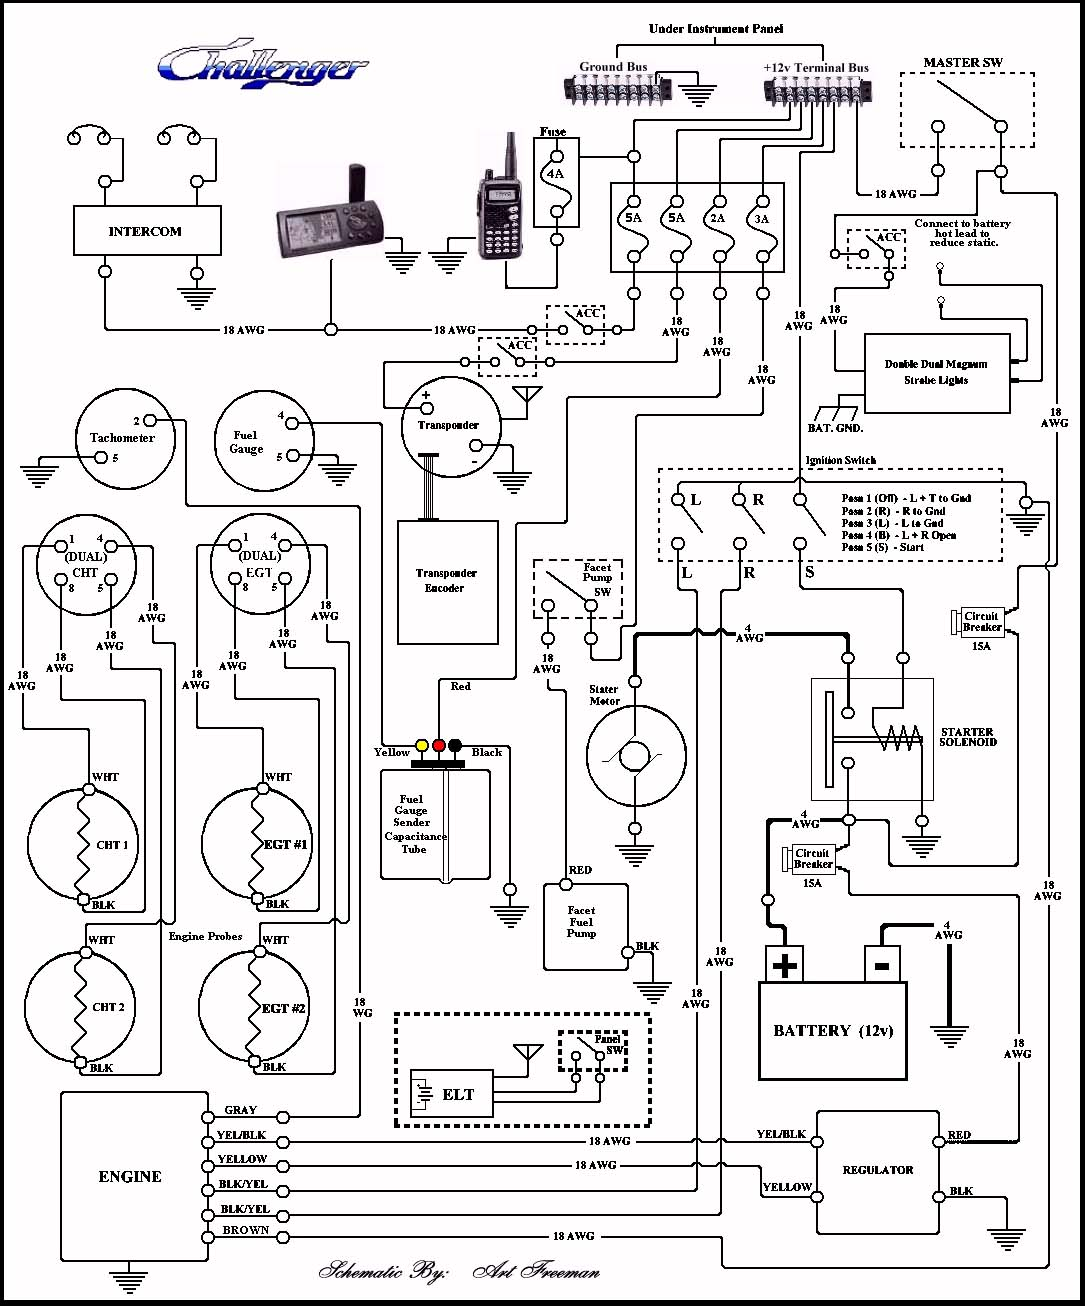 hight resolution of basic wiring of fuselage instruments and power source